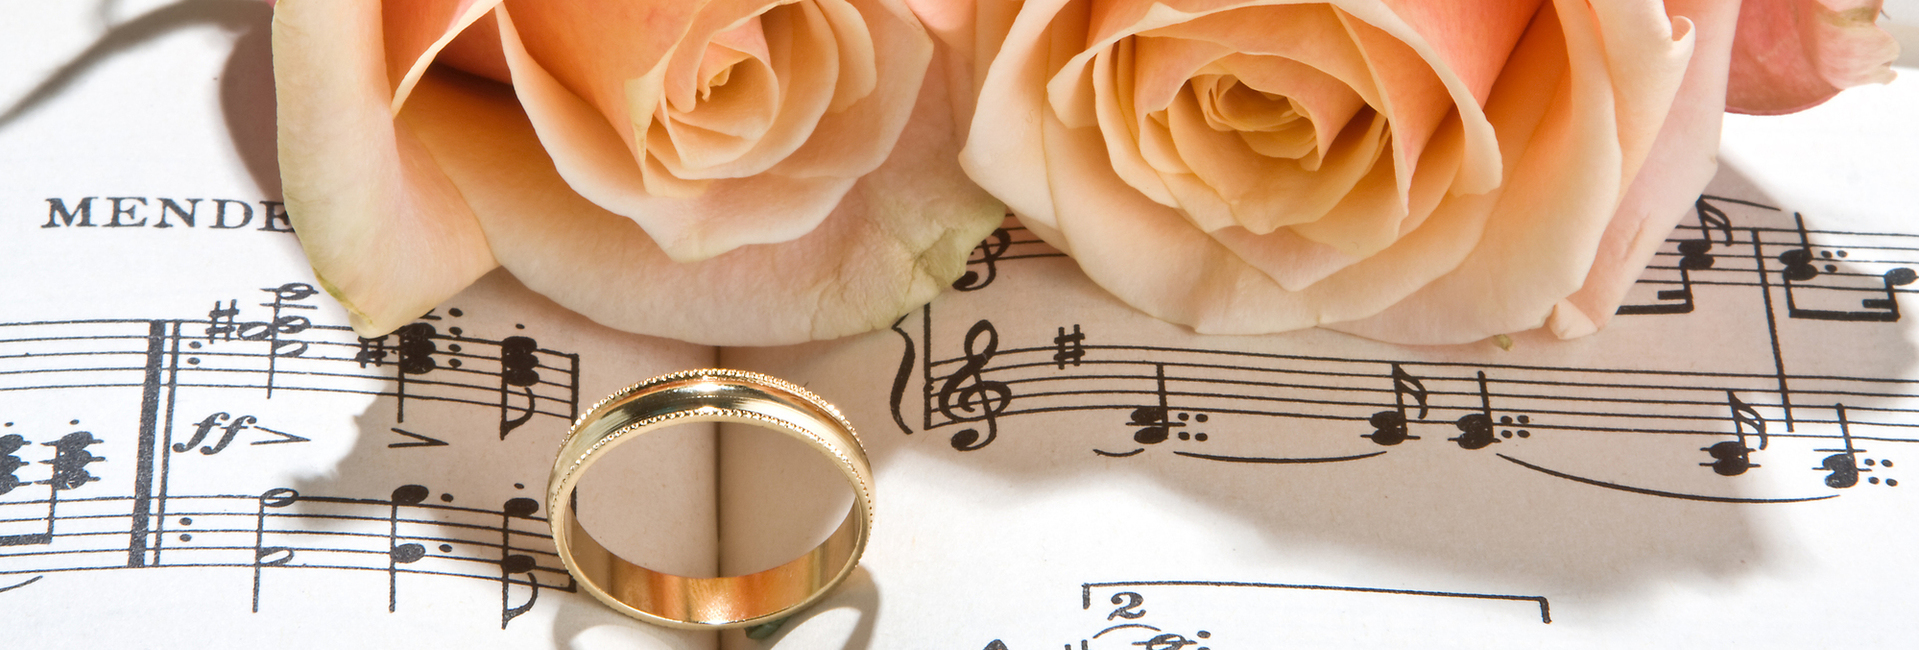 Wedding Music Design